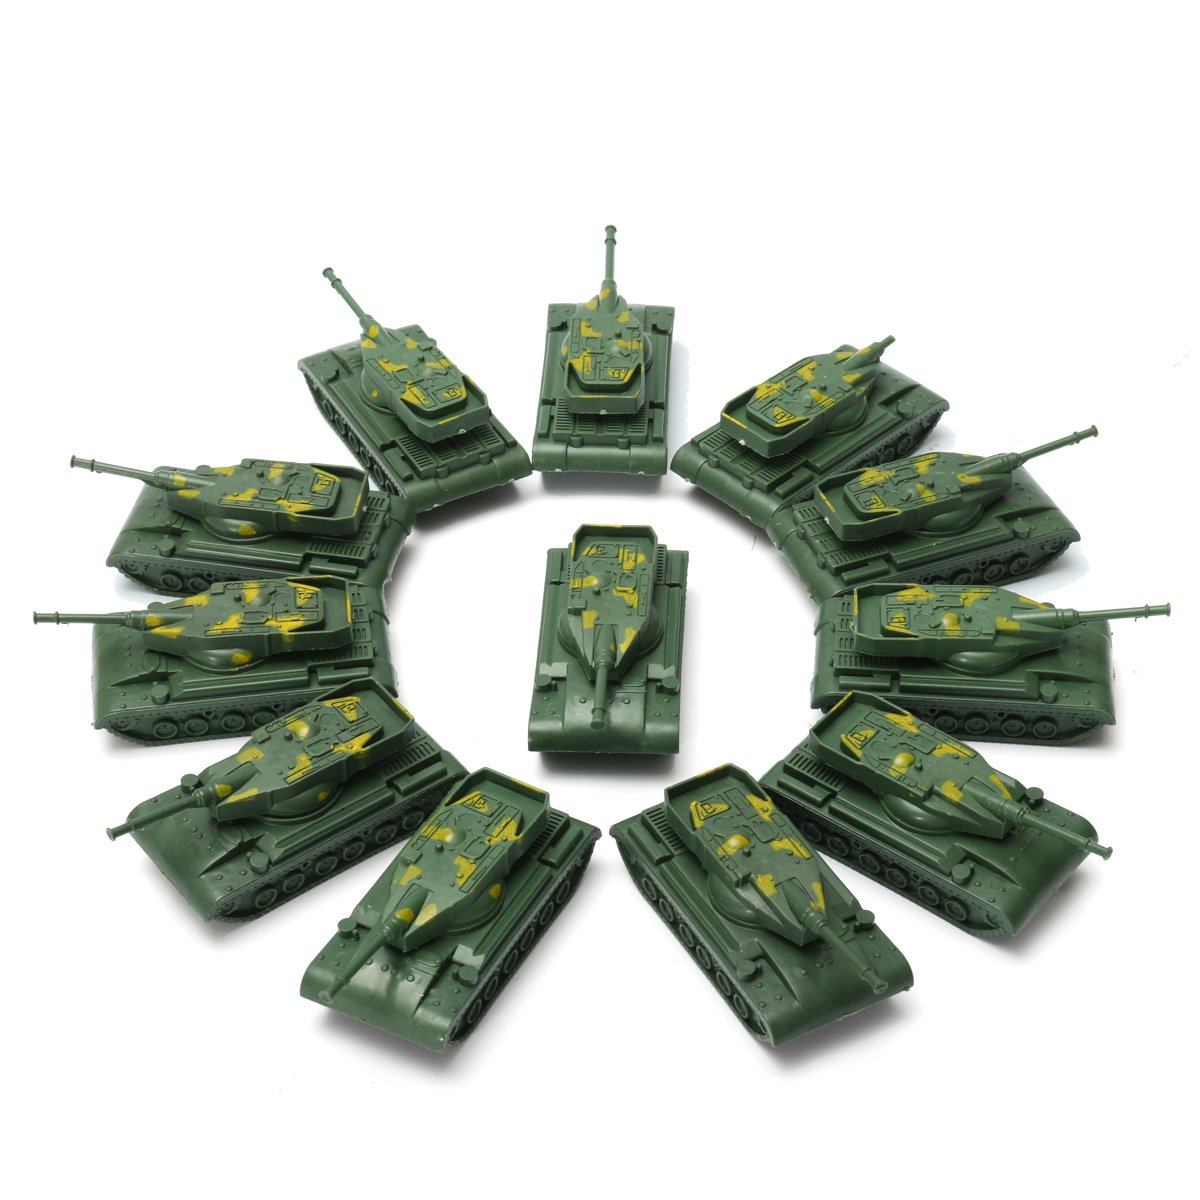 CynKen 12Pcs Military Tank Model Rotating Turret Plastic Toy Soldier Army Men Accessory For Sandbox